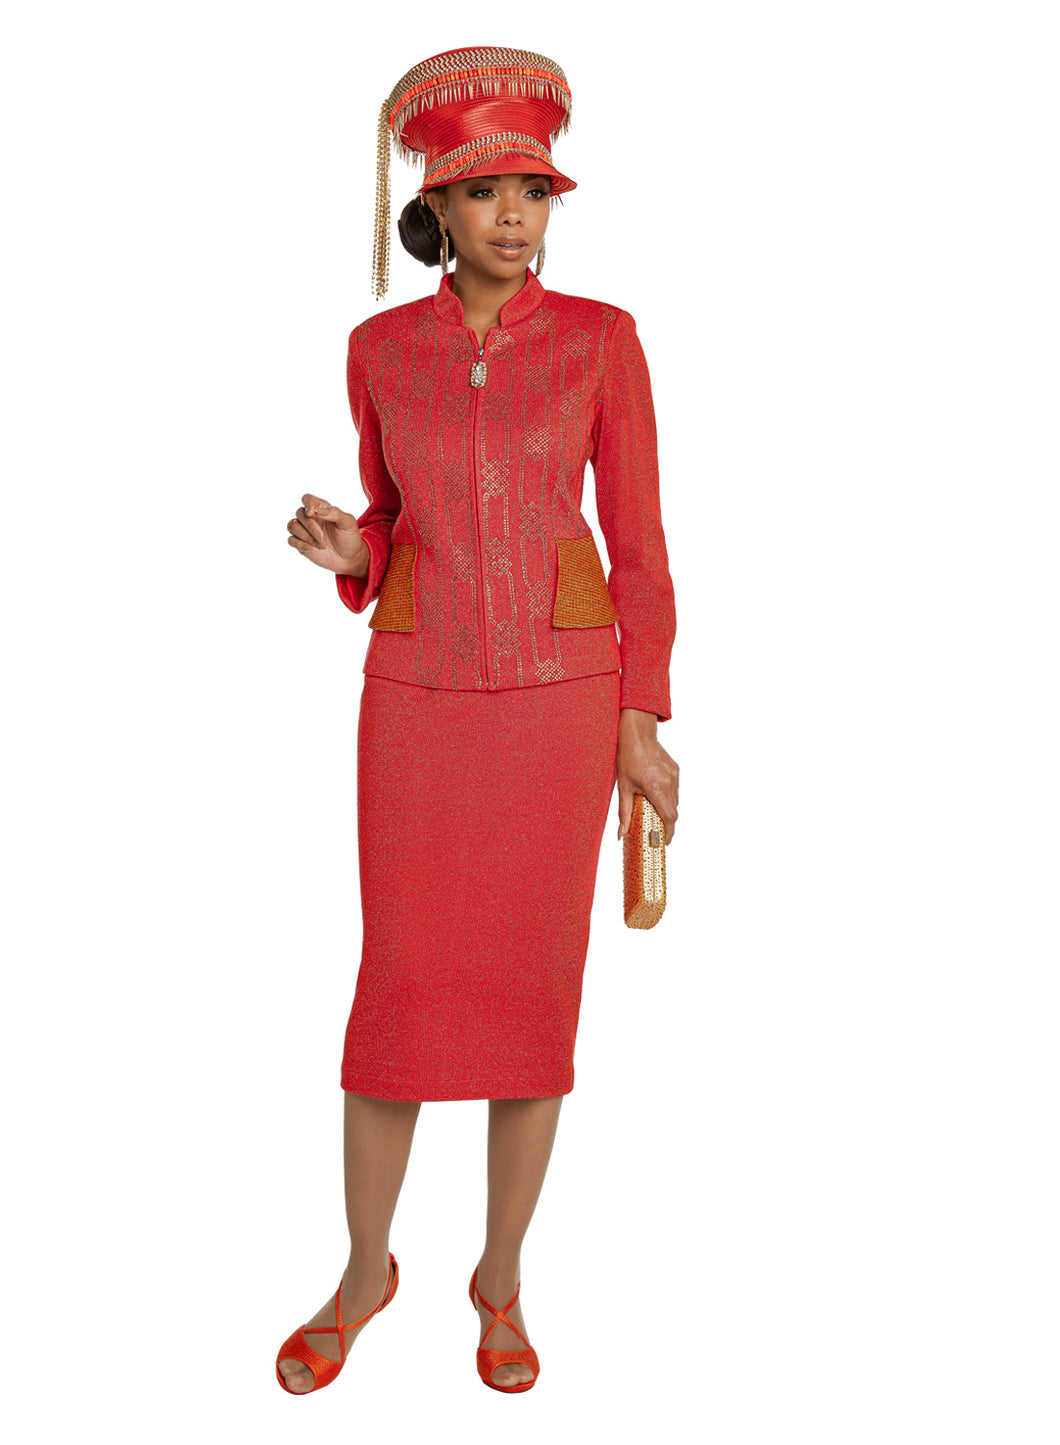 Donna Vinci Red Orange Knit 2 piece Jacket and Skirt Set - 13265